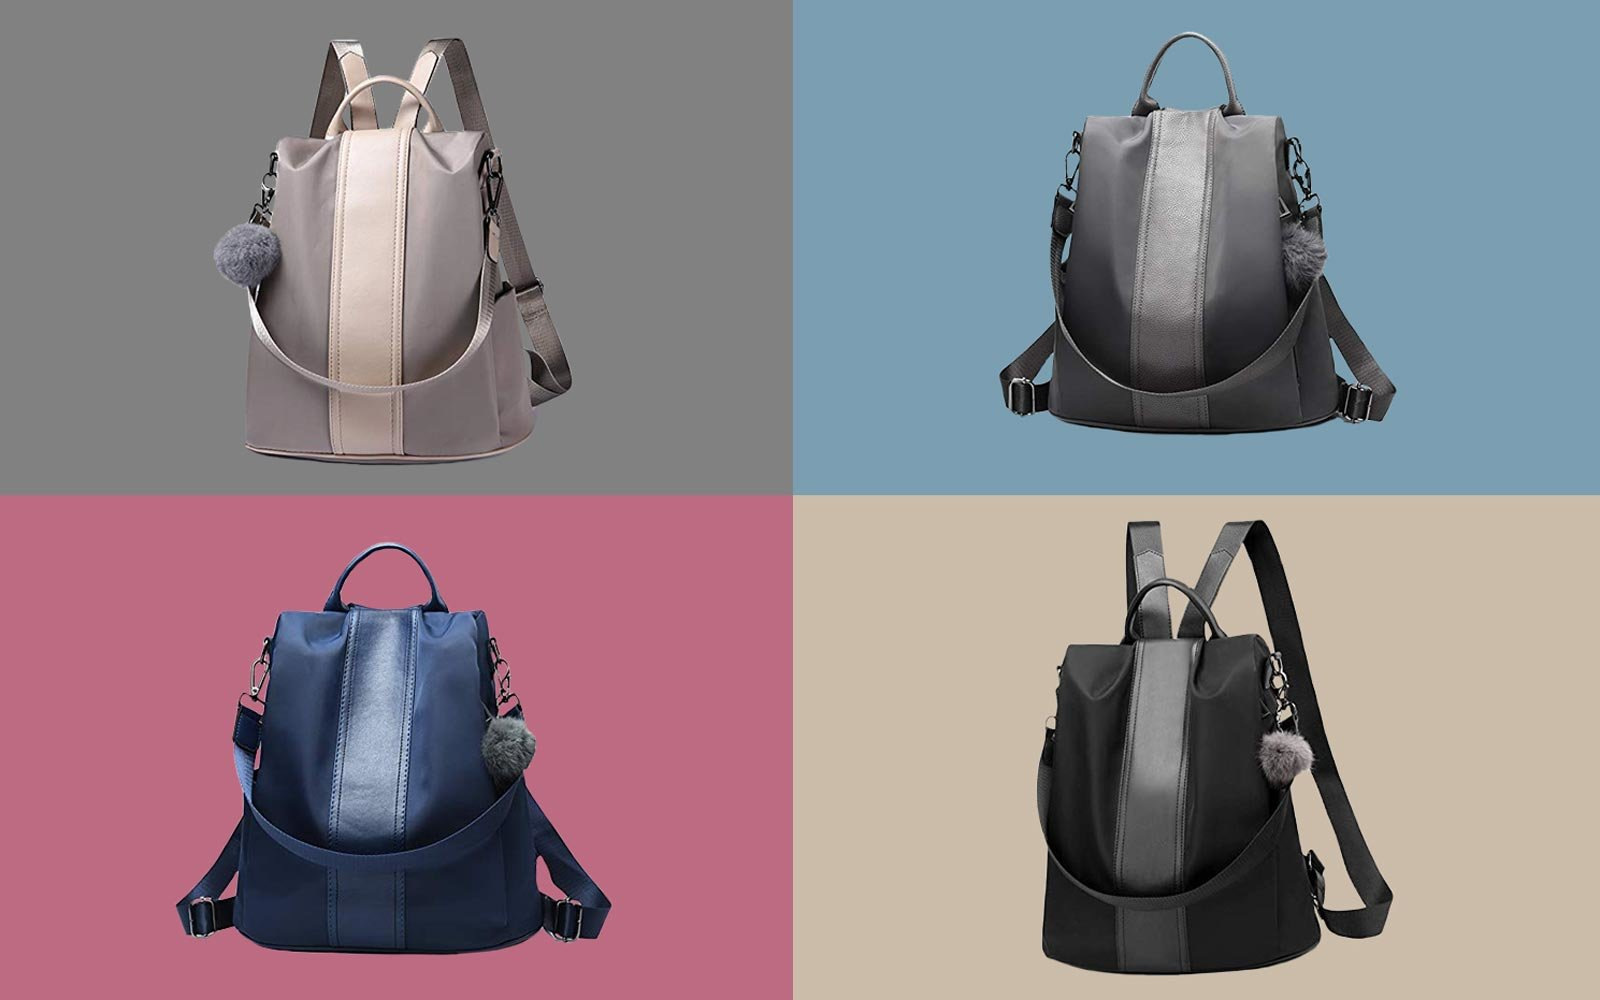 Pincnel backpacks